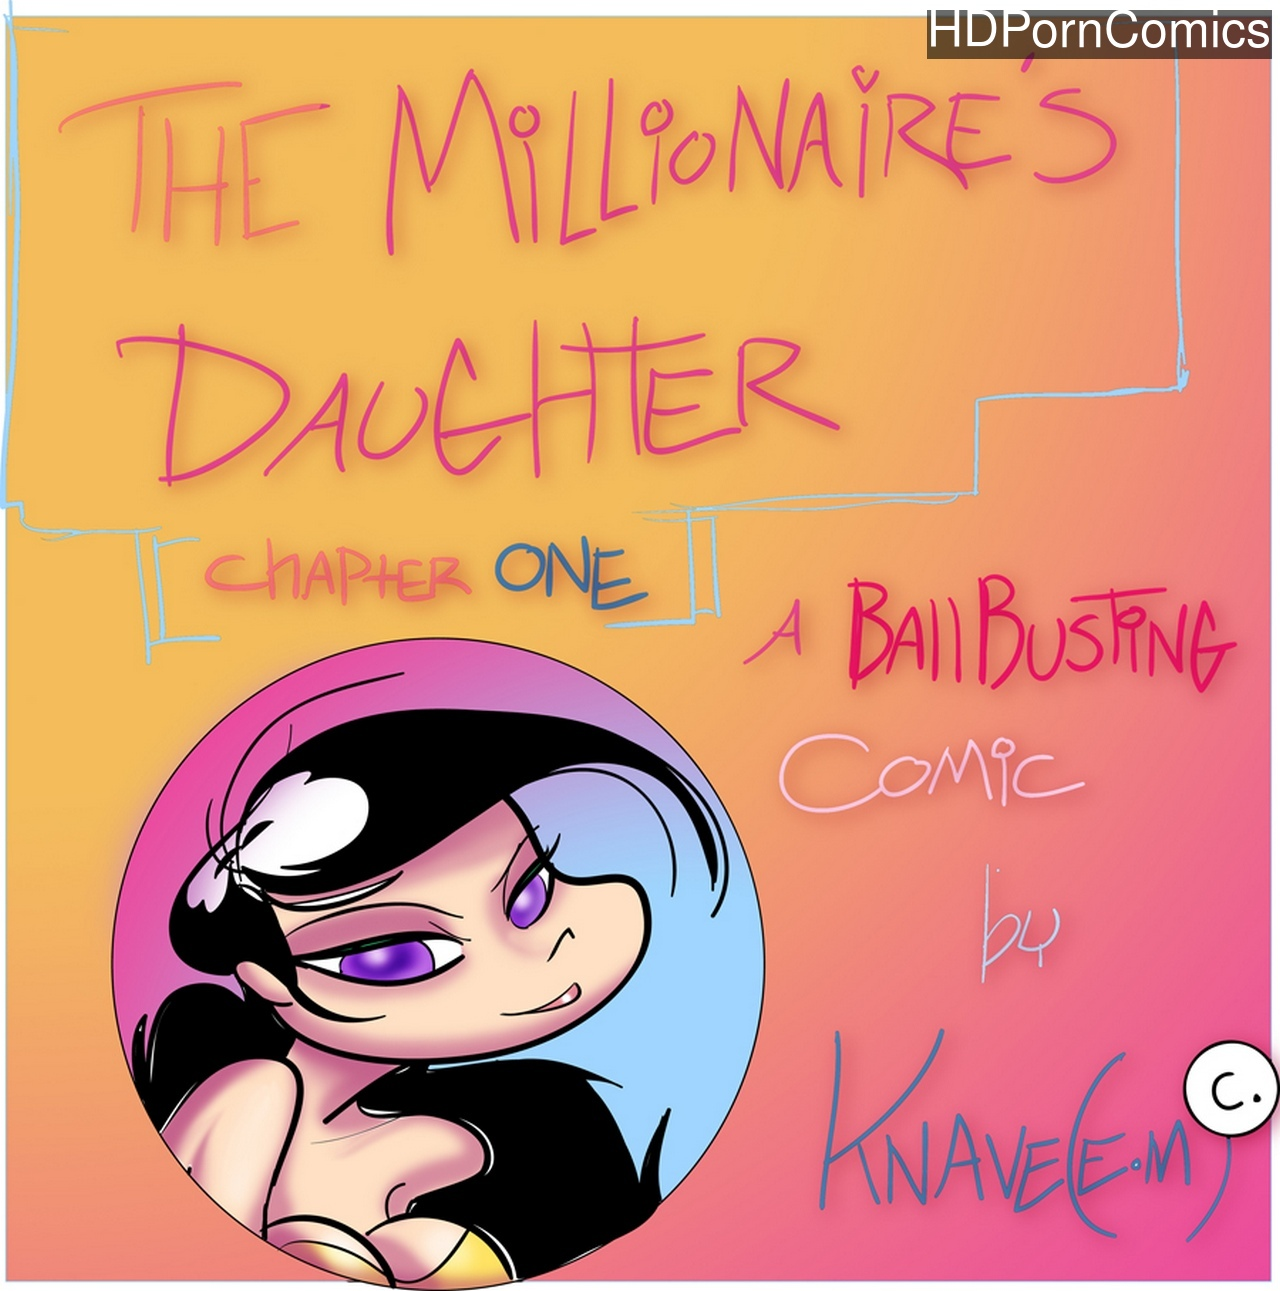 The-Millionaire-s-Daughter-1 1 free porn comics